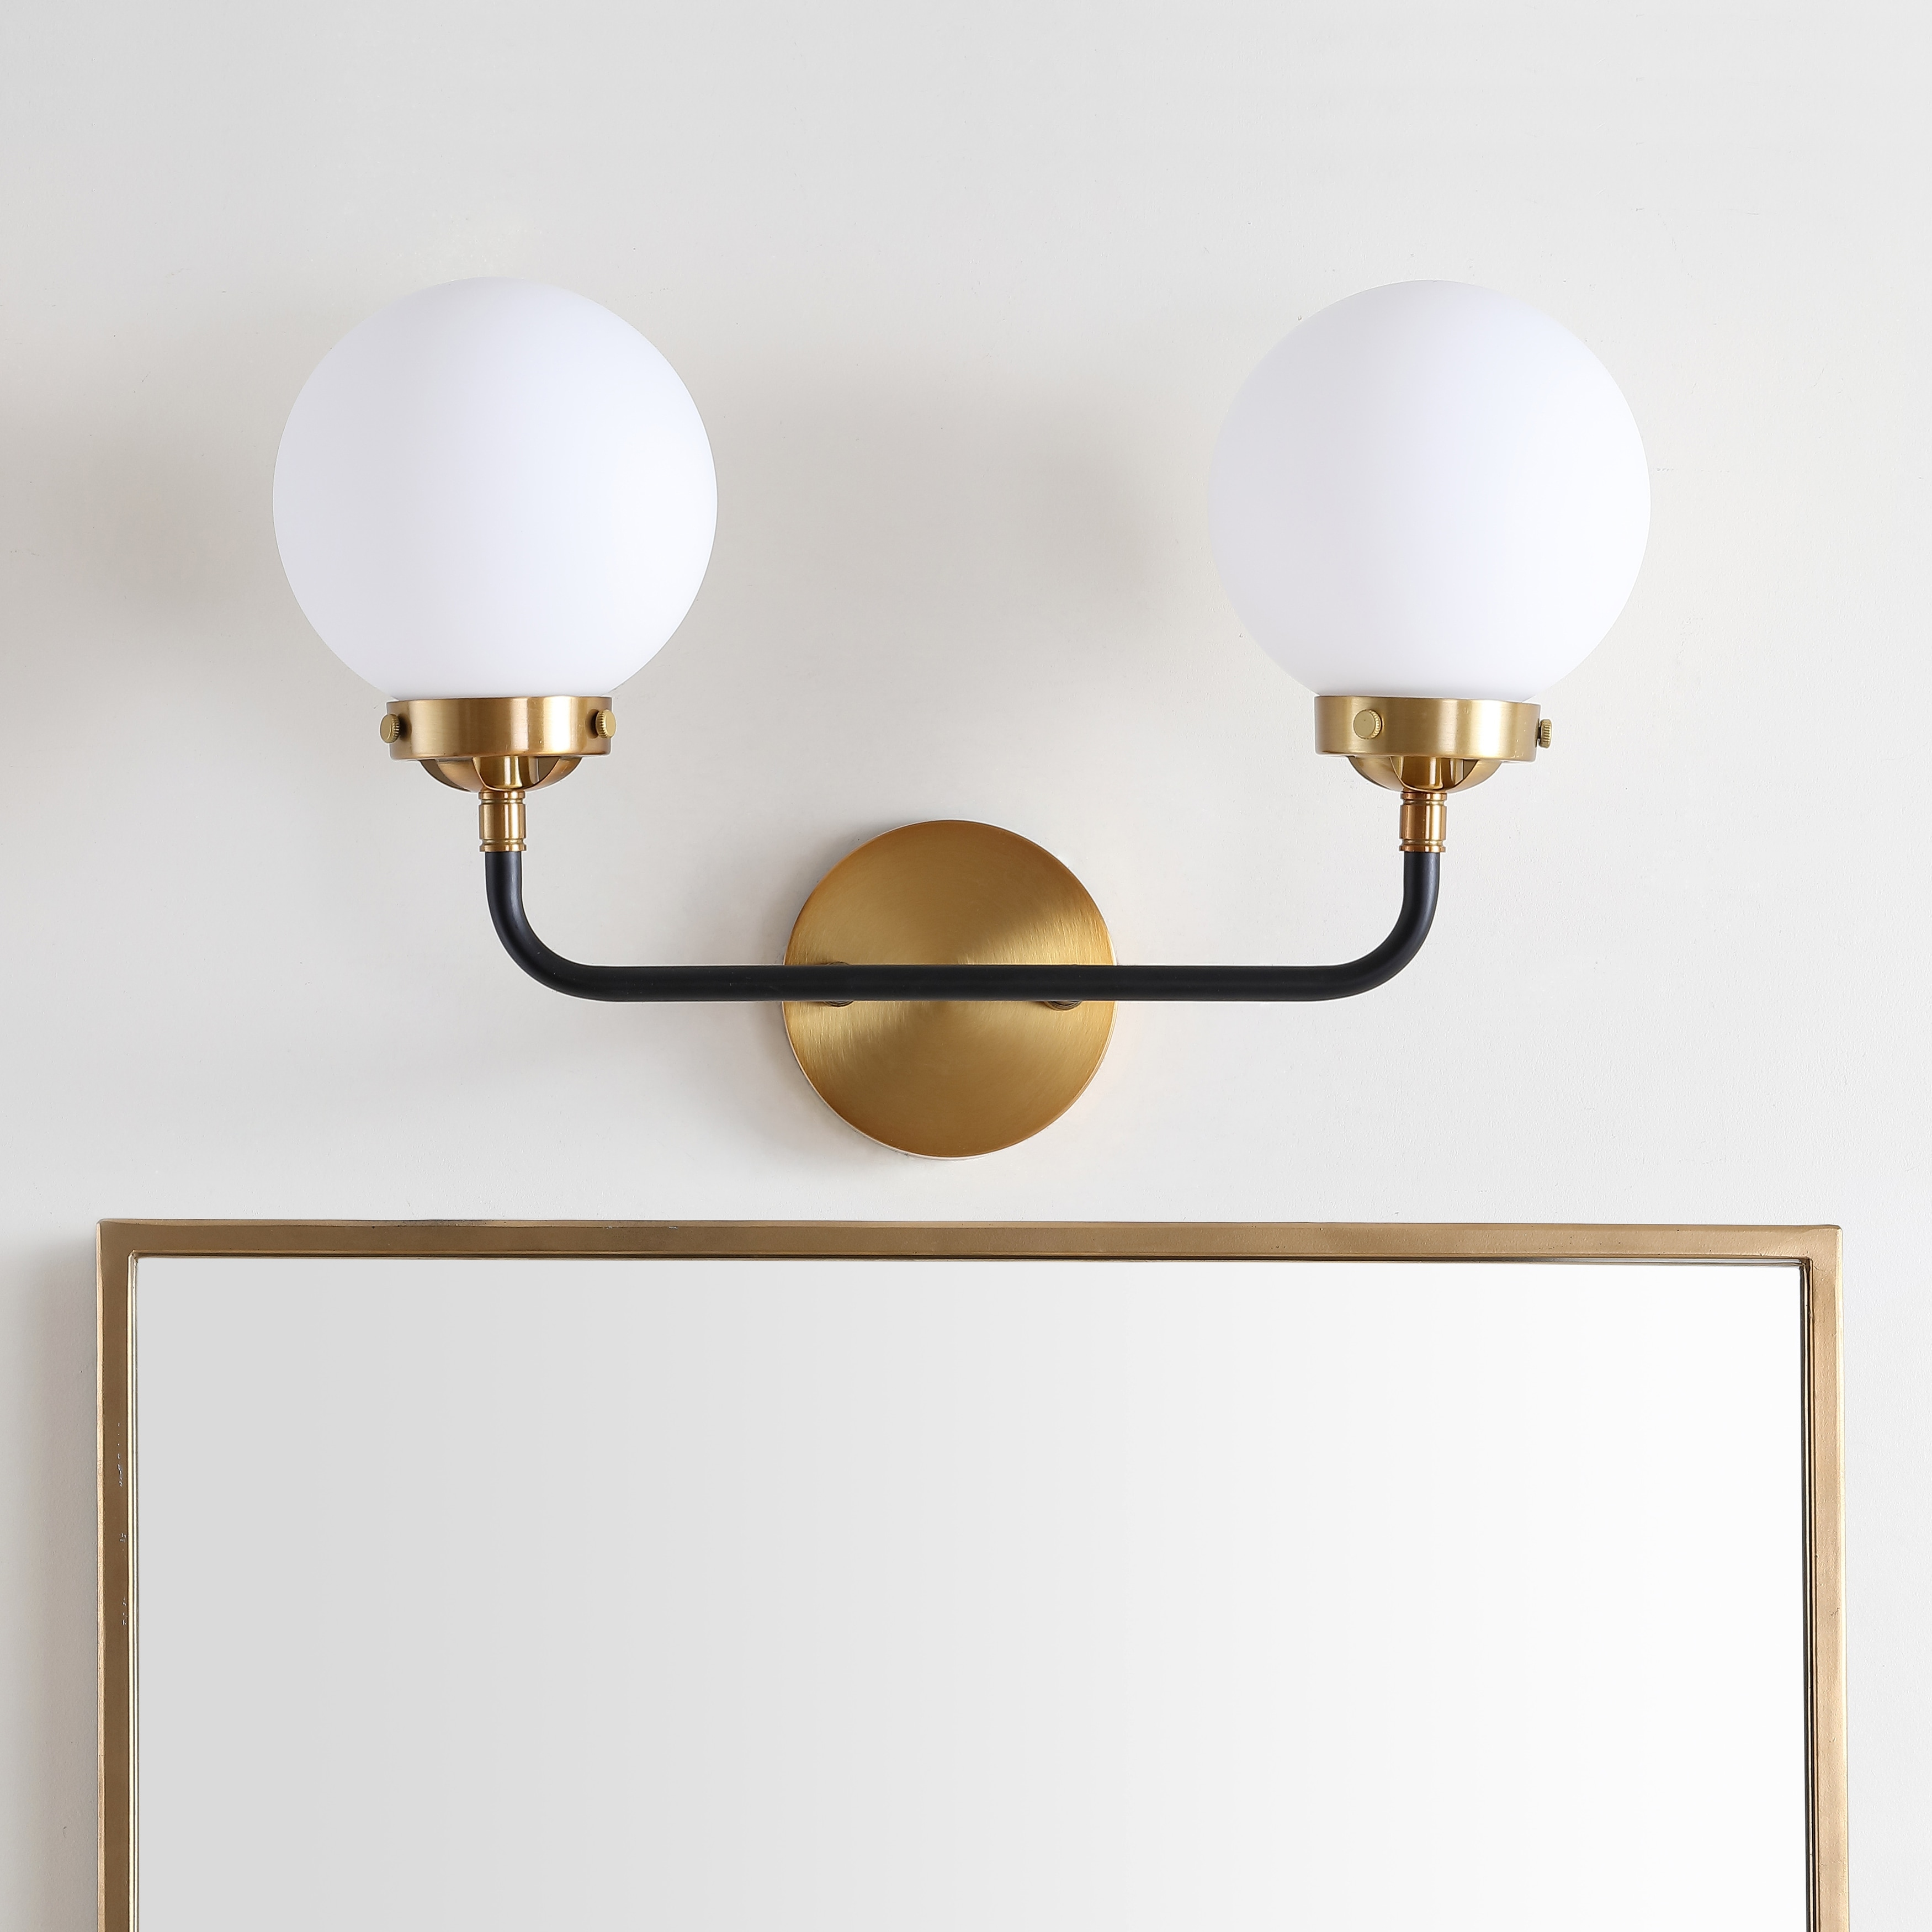 Image of: Shop Black Friday Deals On Caleb 2 Light 18 Brass Wall Sconce Brass Gold Black By Jonathan Y On Sale Overstock 25858990